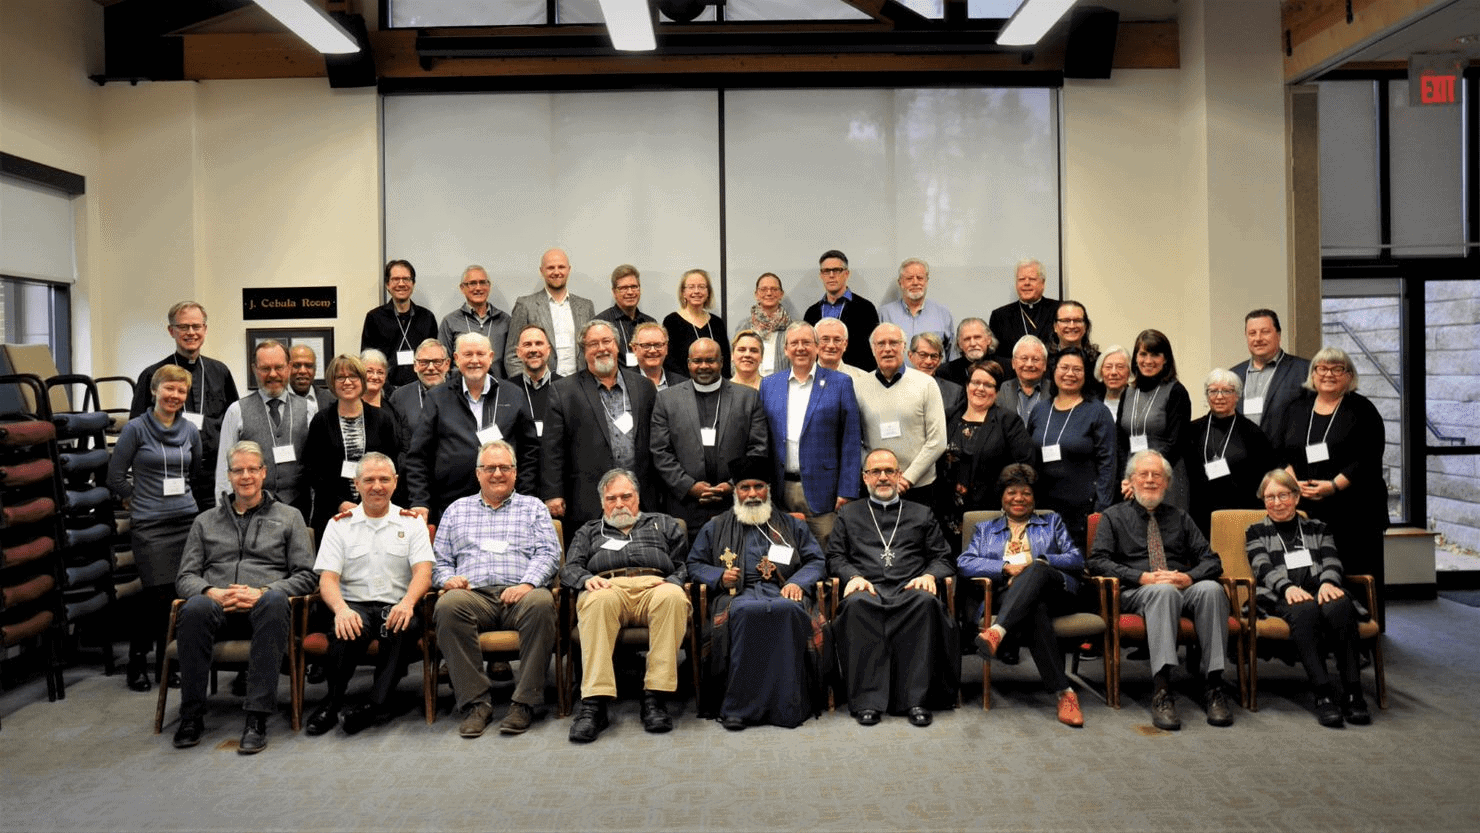 Members and guests present at the November 2019 Governing Board meeting.